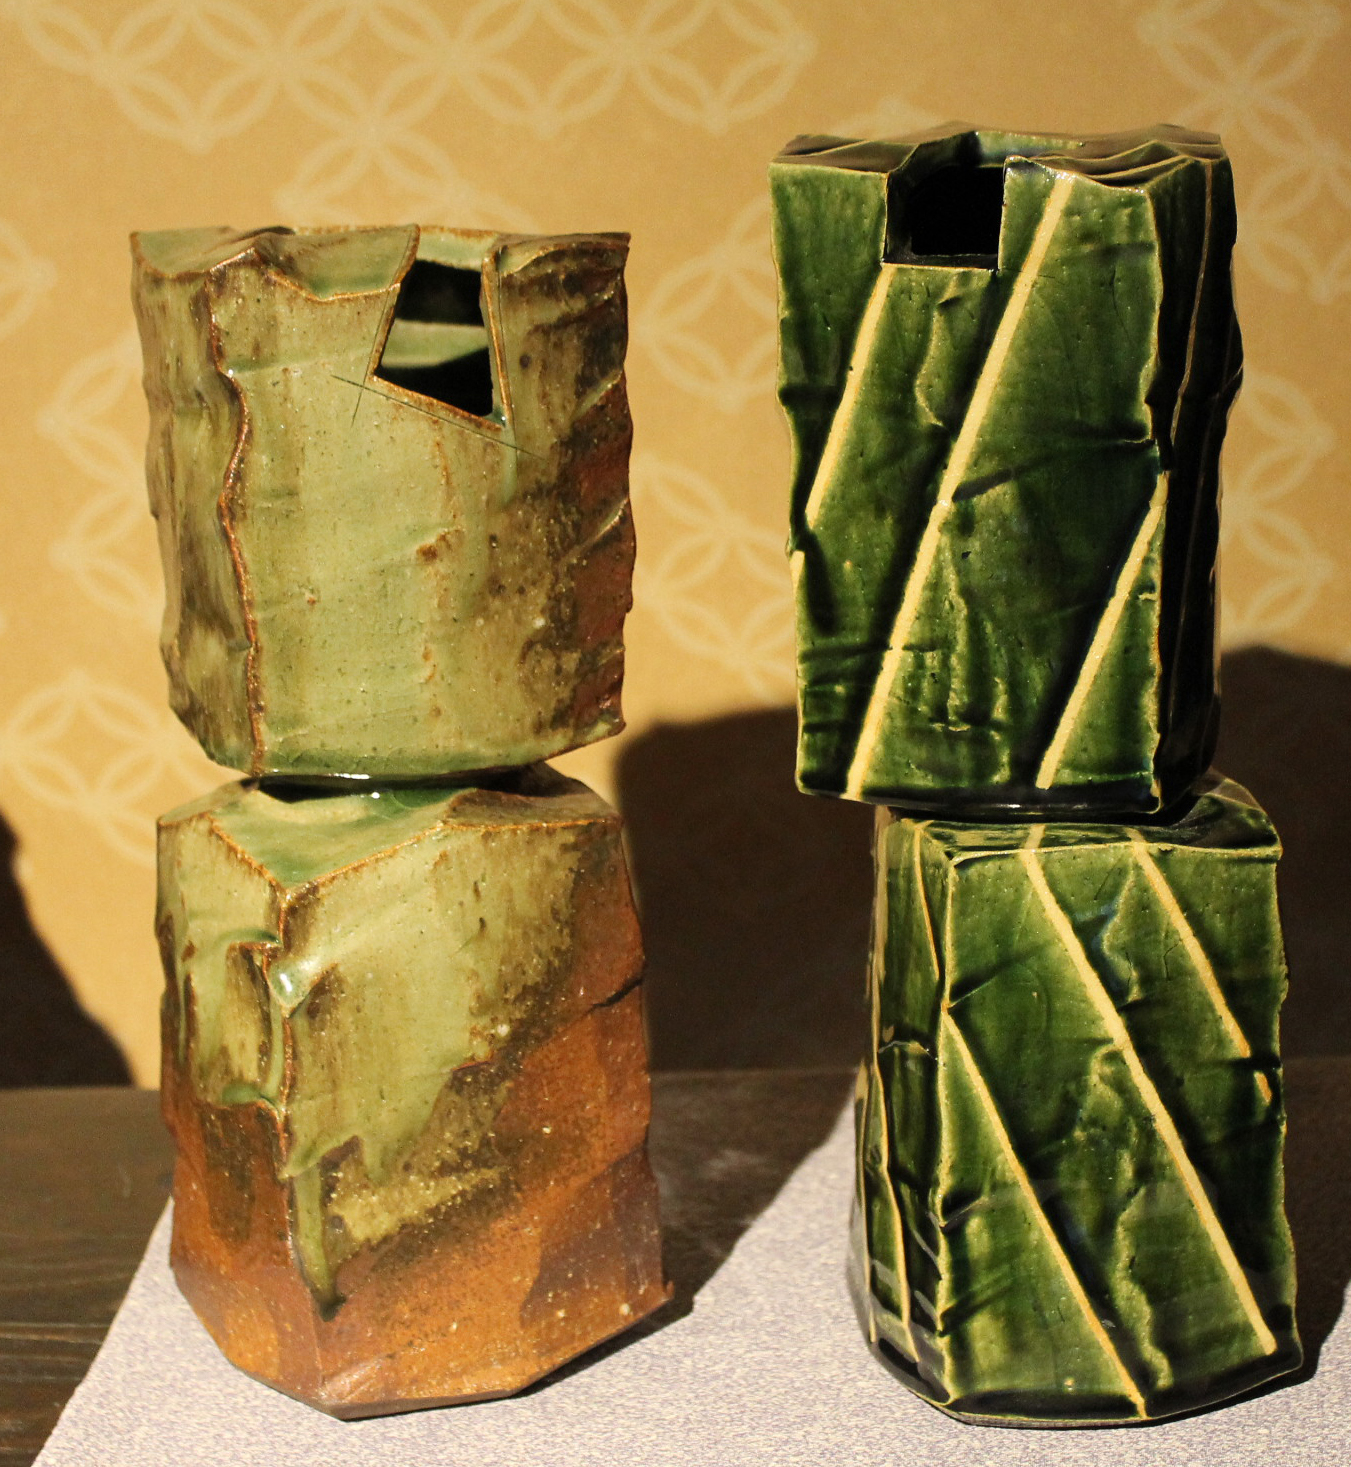 Oribe and Glazed Double-Block Sculpture Vases by Hatano Masanori